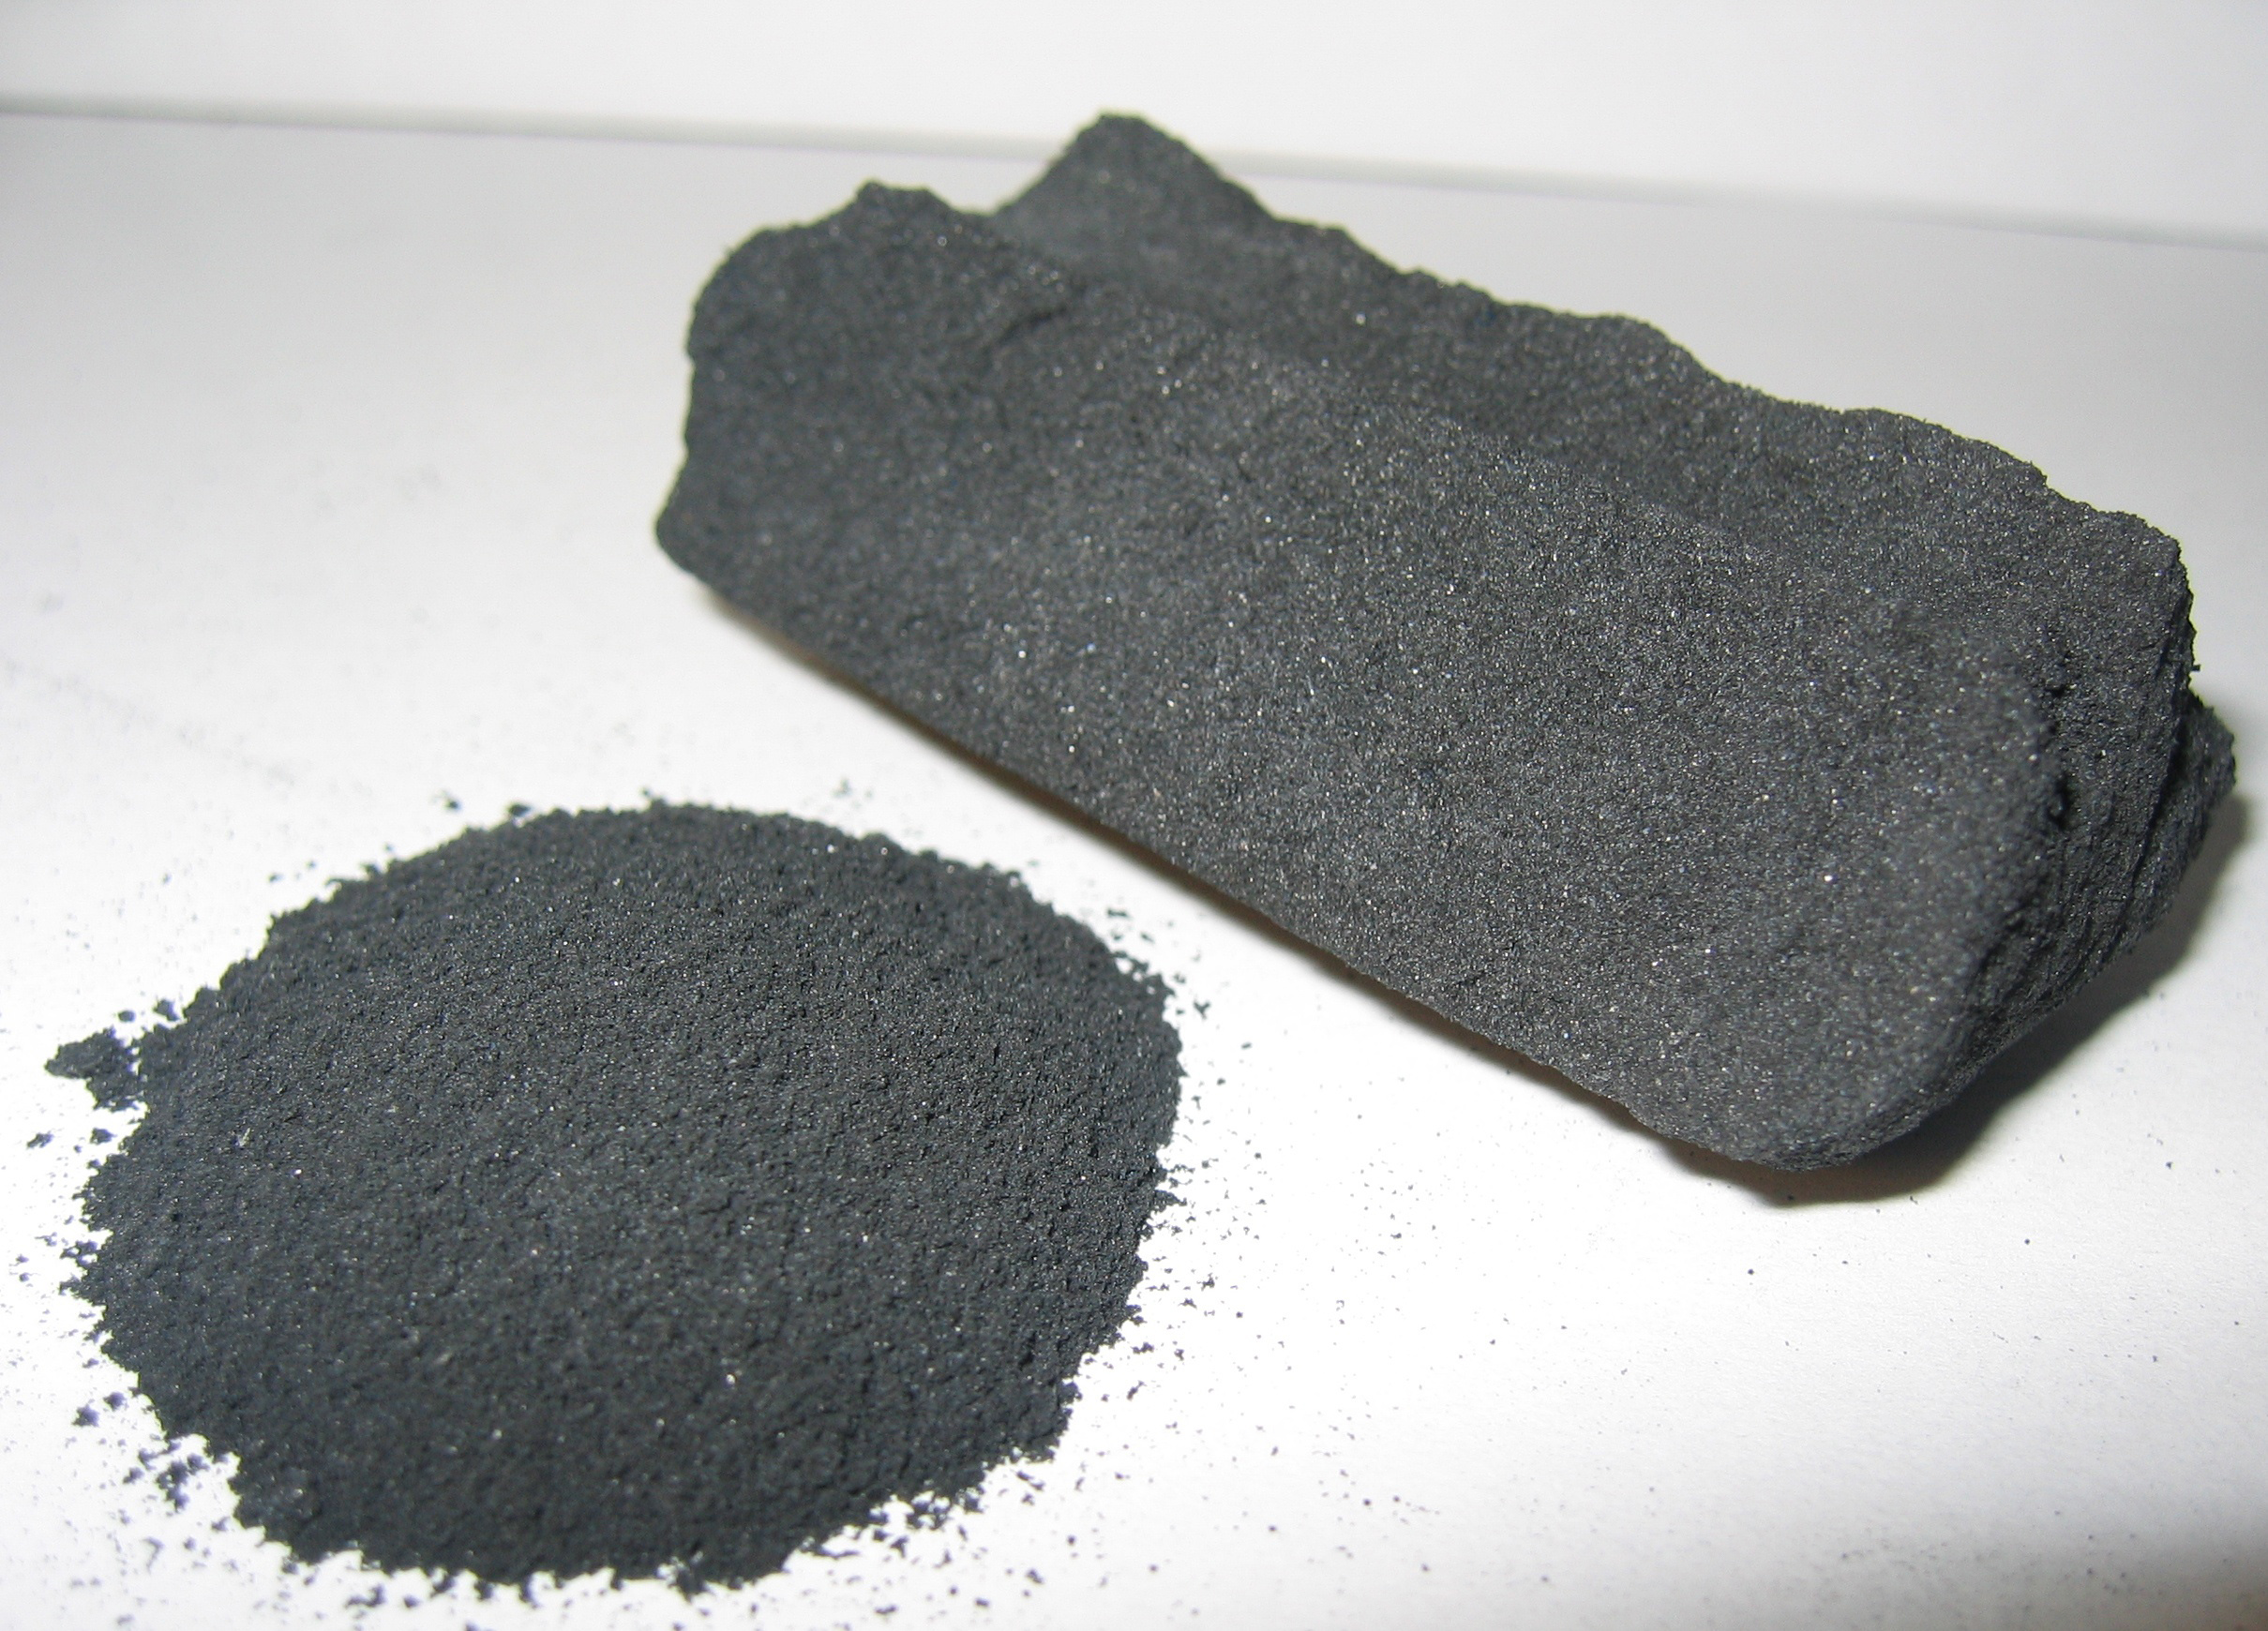 Powdered and granular activated carbon.